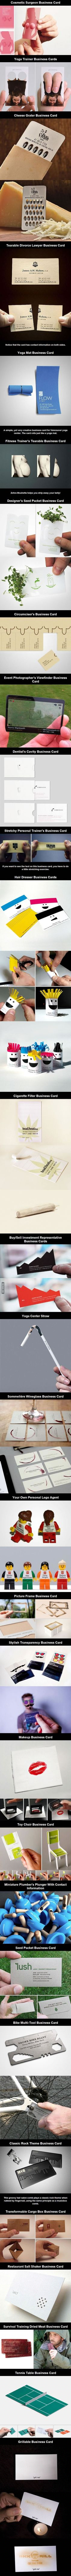 Some of these are really cool. 30 Of The Most Creative Business Cards Ever.